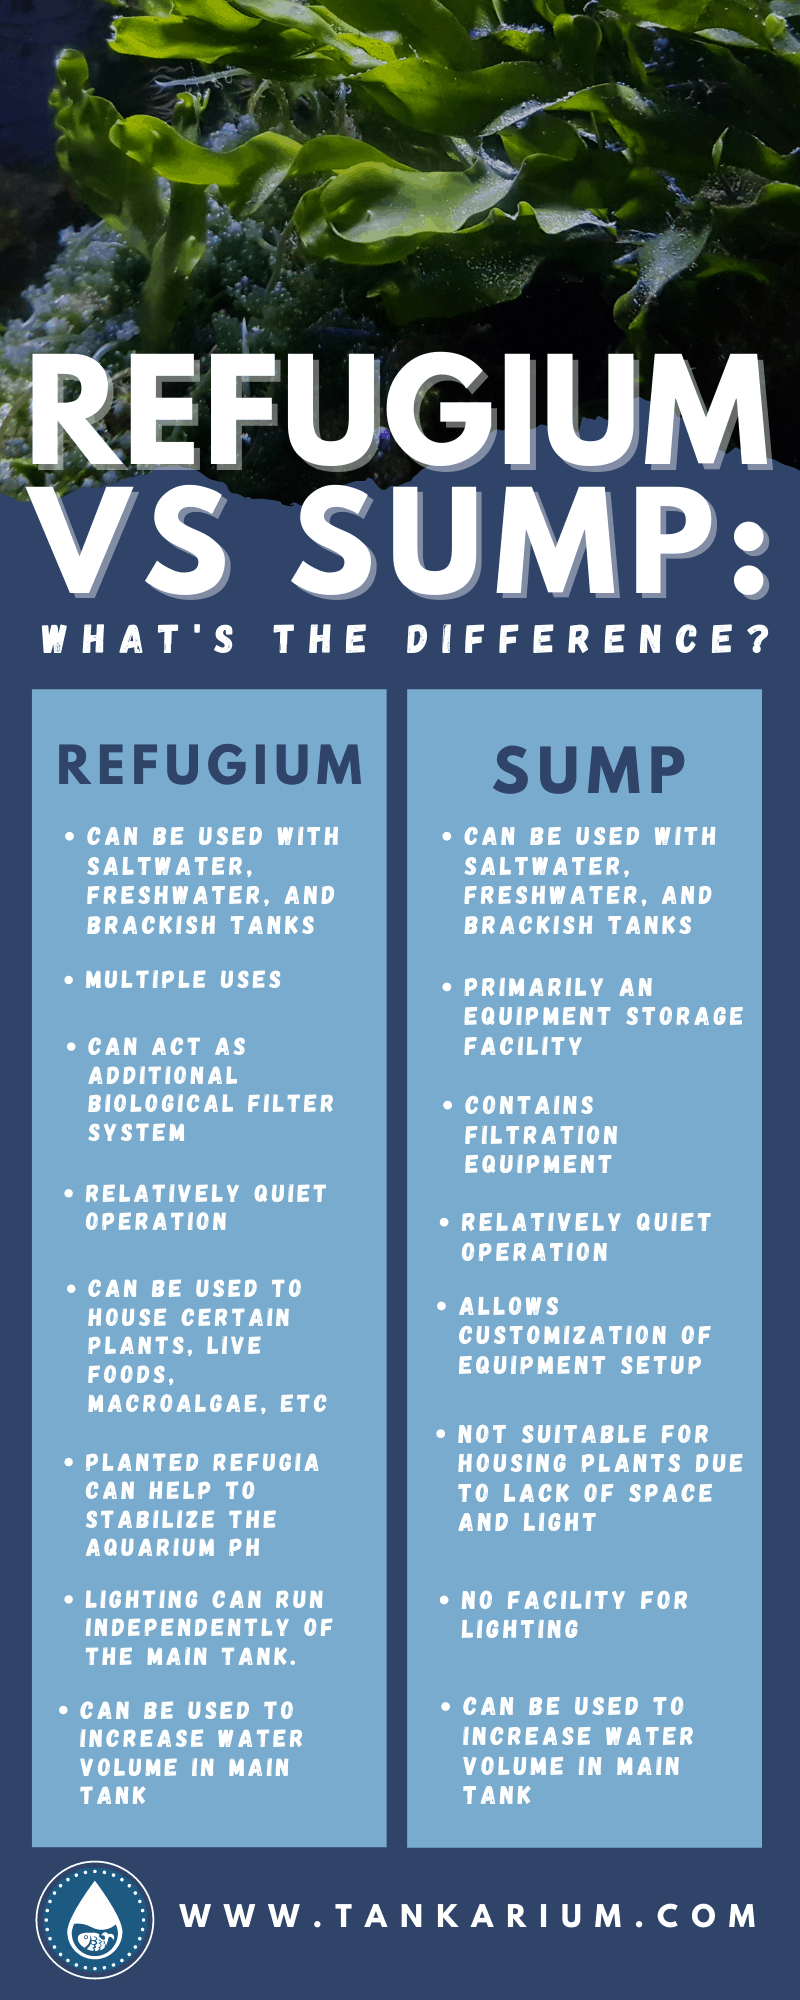 Refugium VS Sump: What's The Difference? - Infographic